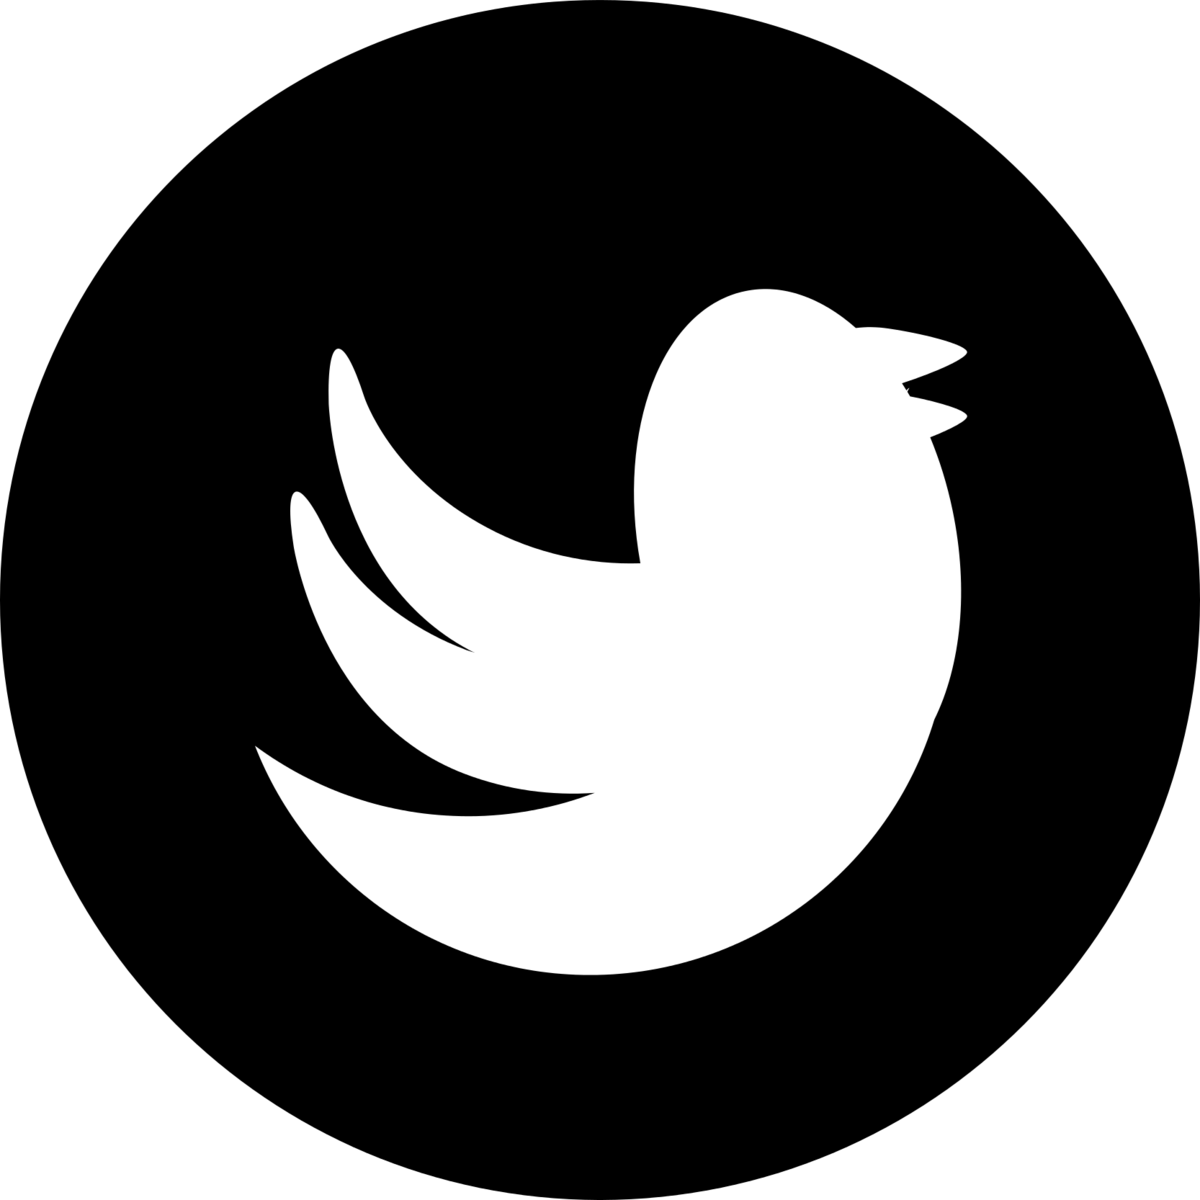 Twitter Icons Black And White | www.pixshark.com - Images ...